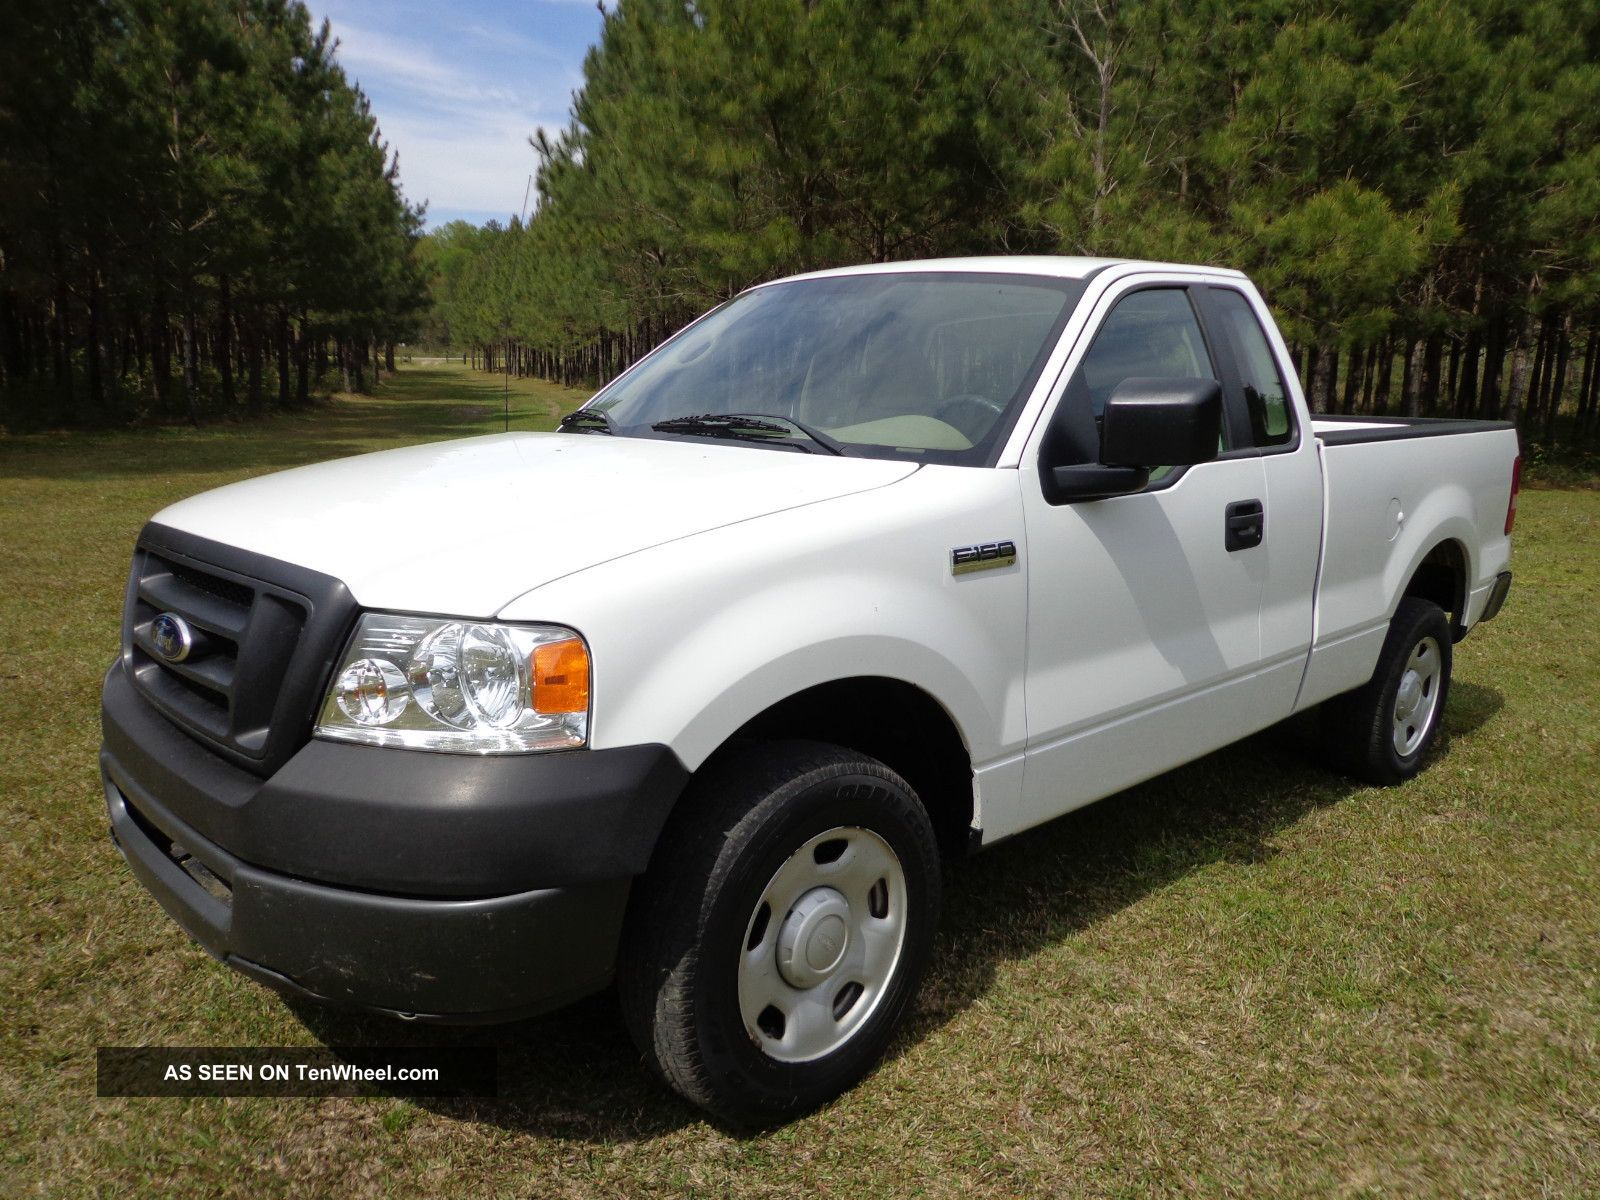 2007 Ford F150 Extended Cab 4x4 Xlt Lifted | Autos Post